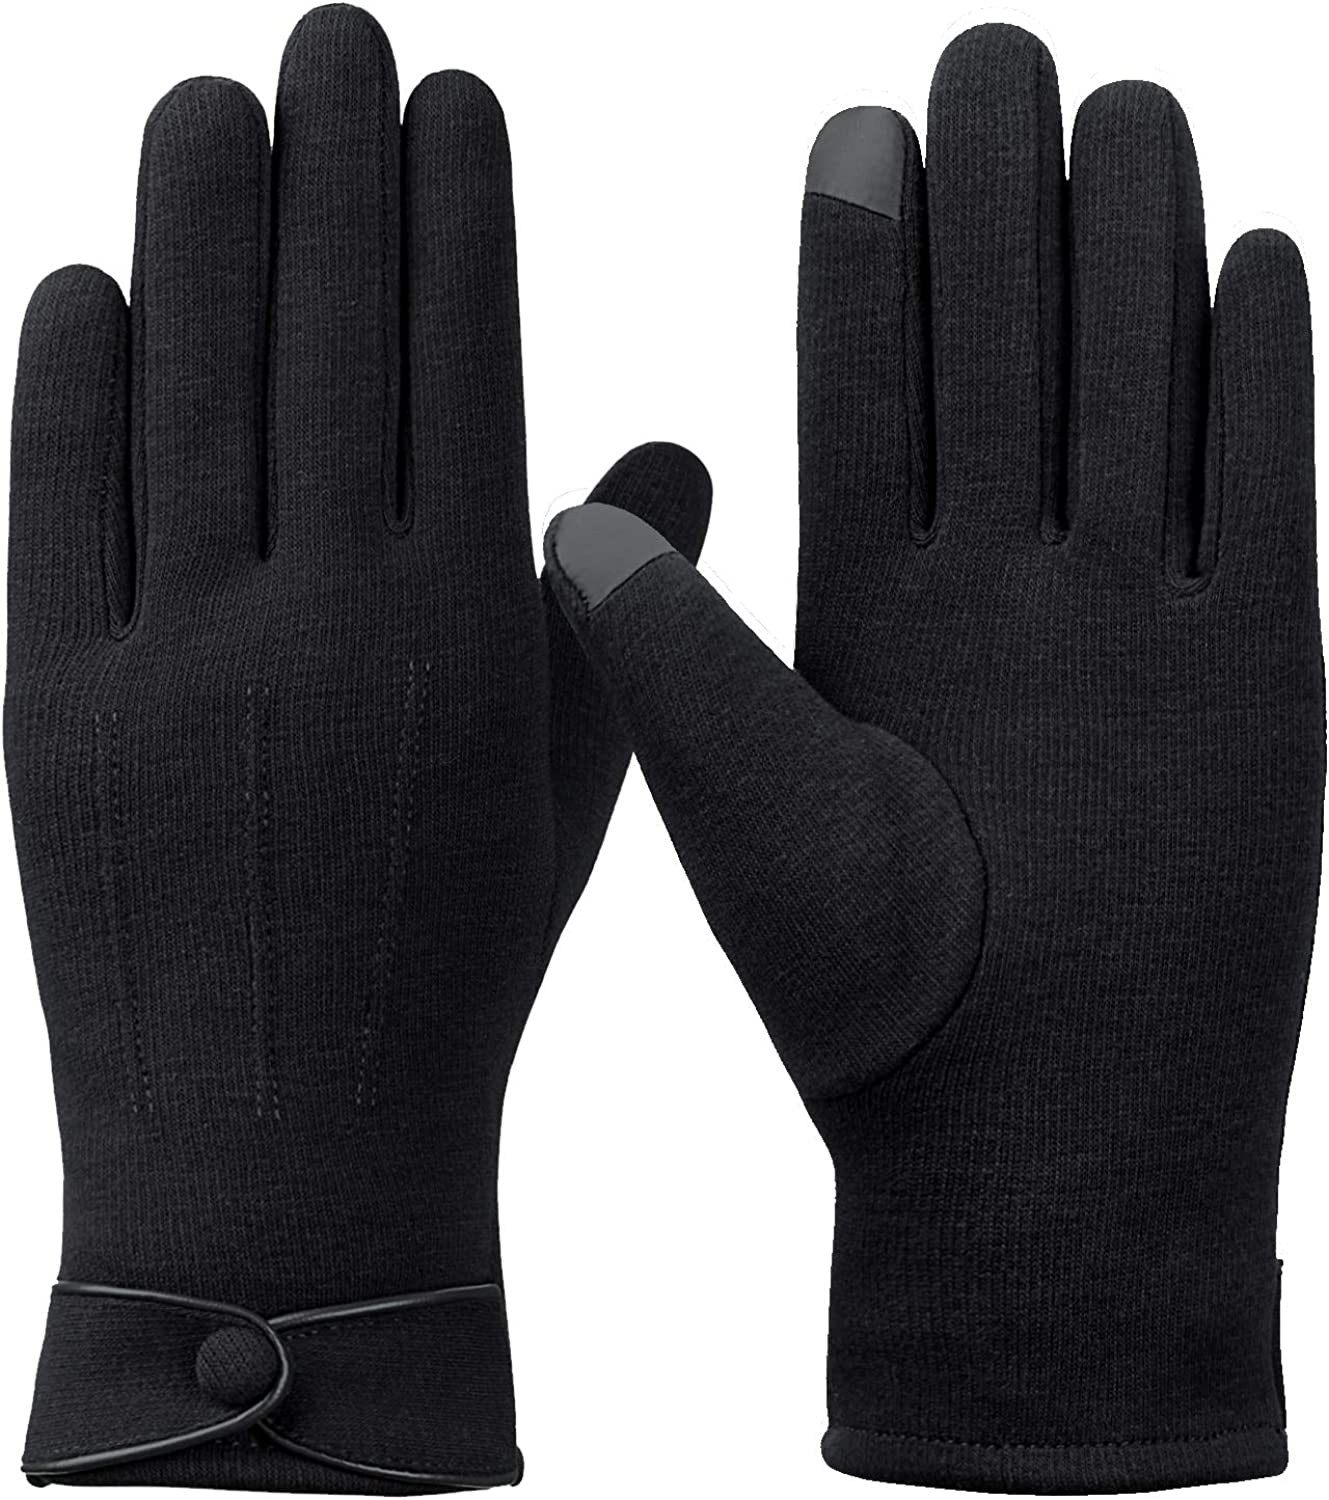 Womens Winter Gloves Touchscreen Warm Gloves Windproof Gloves for Women Girls with Lining Glove, Black at  Women's Clothing store